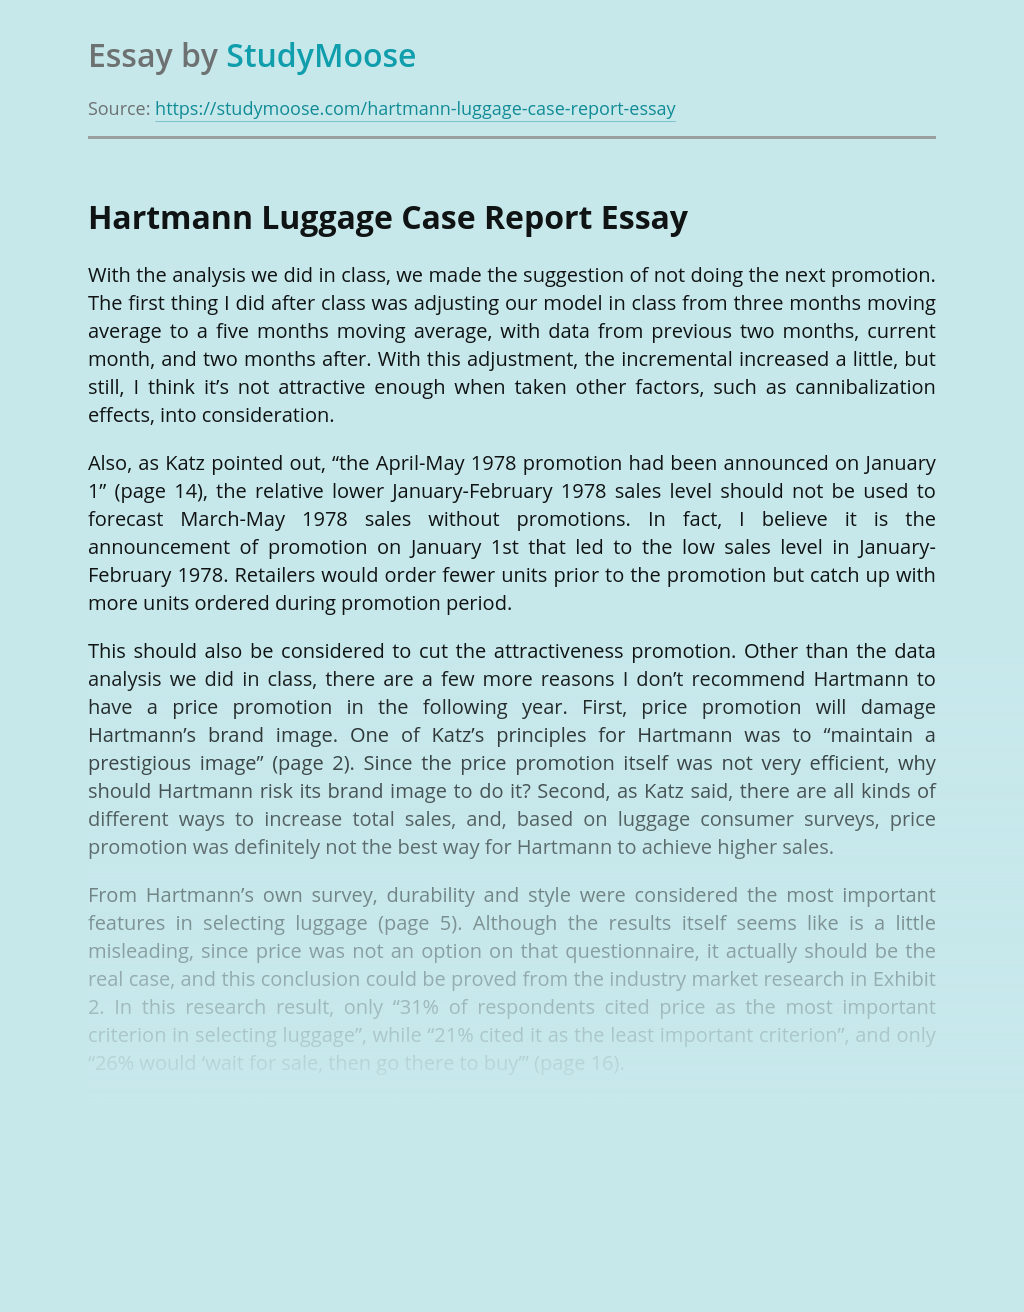 Report on Hartmann Luggage Advertising